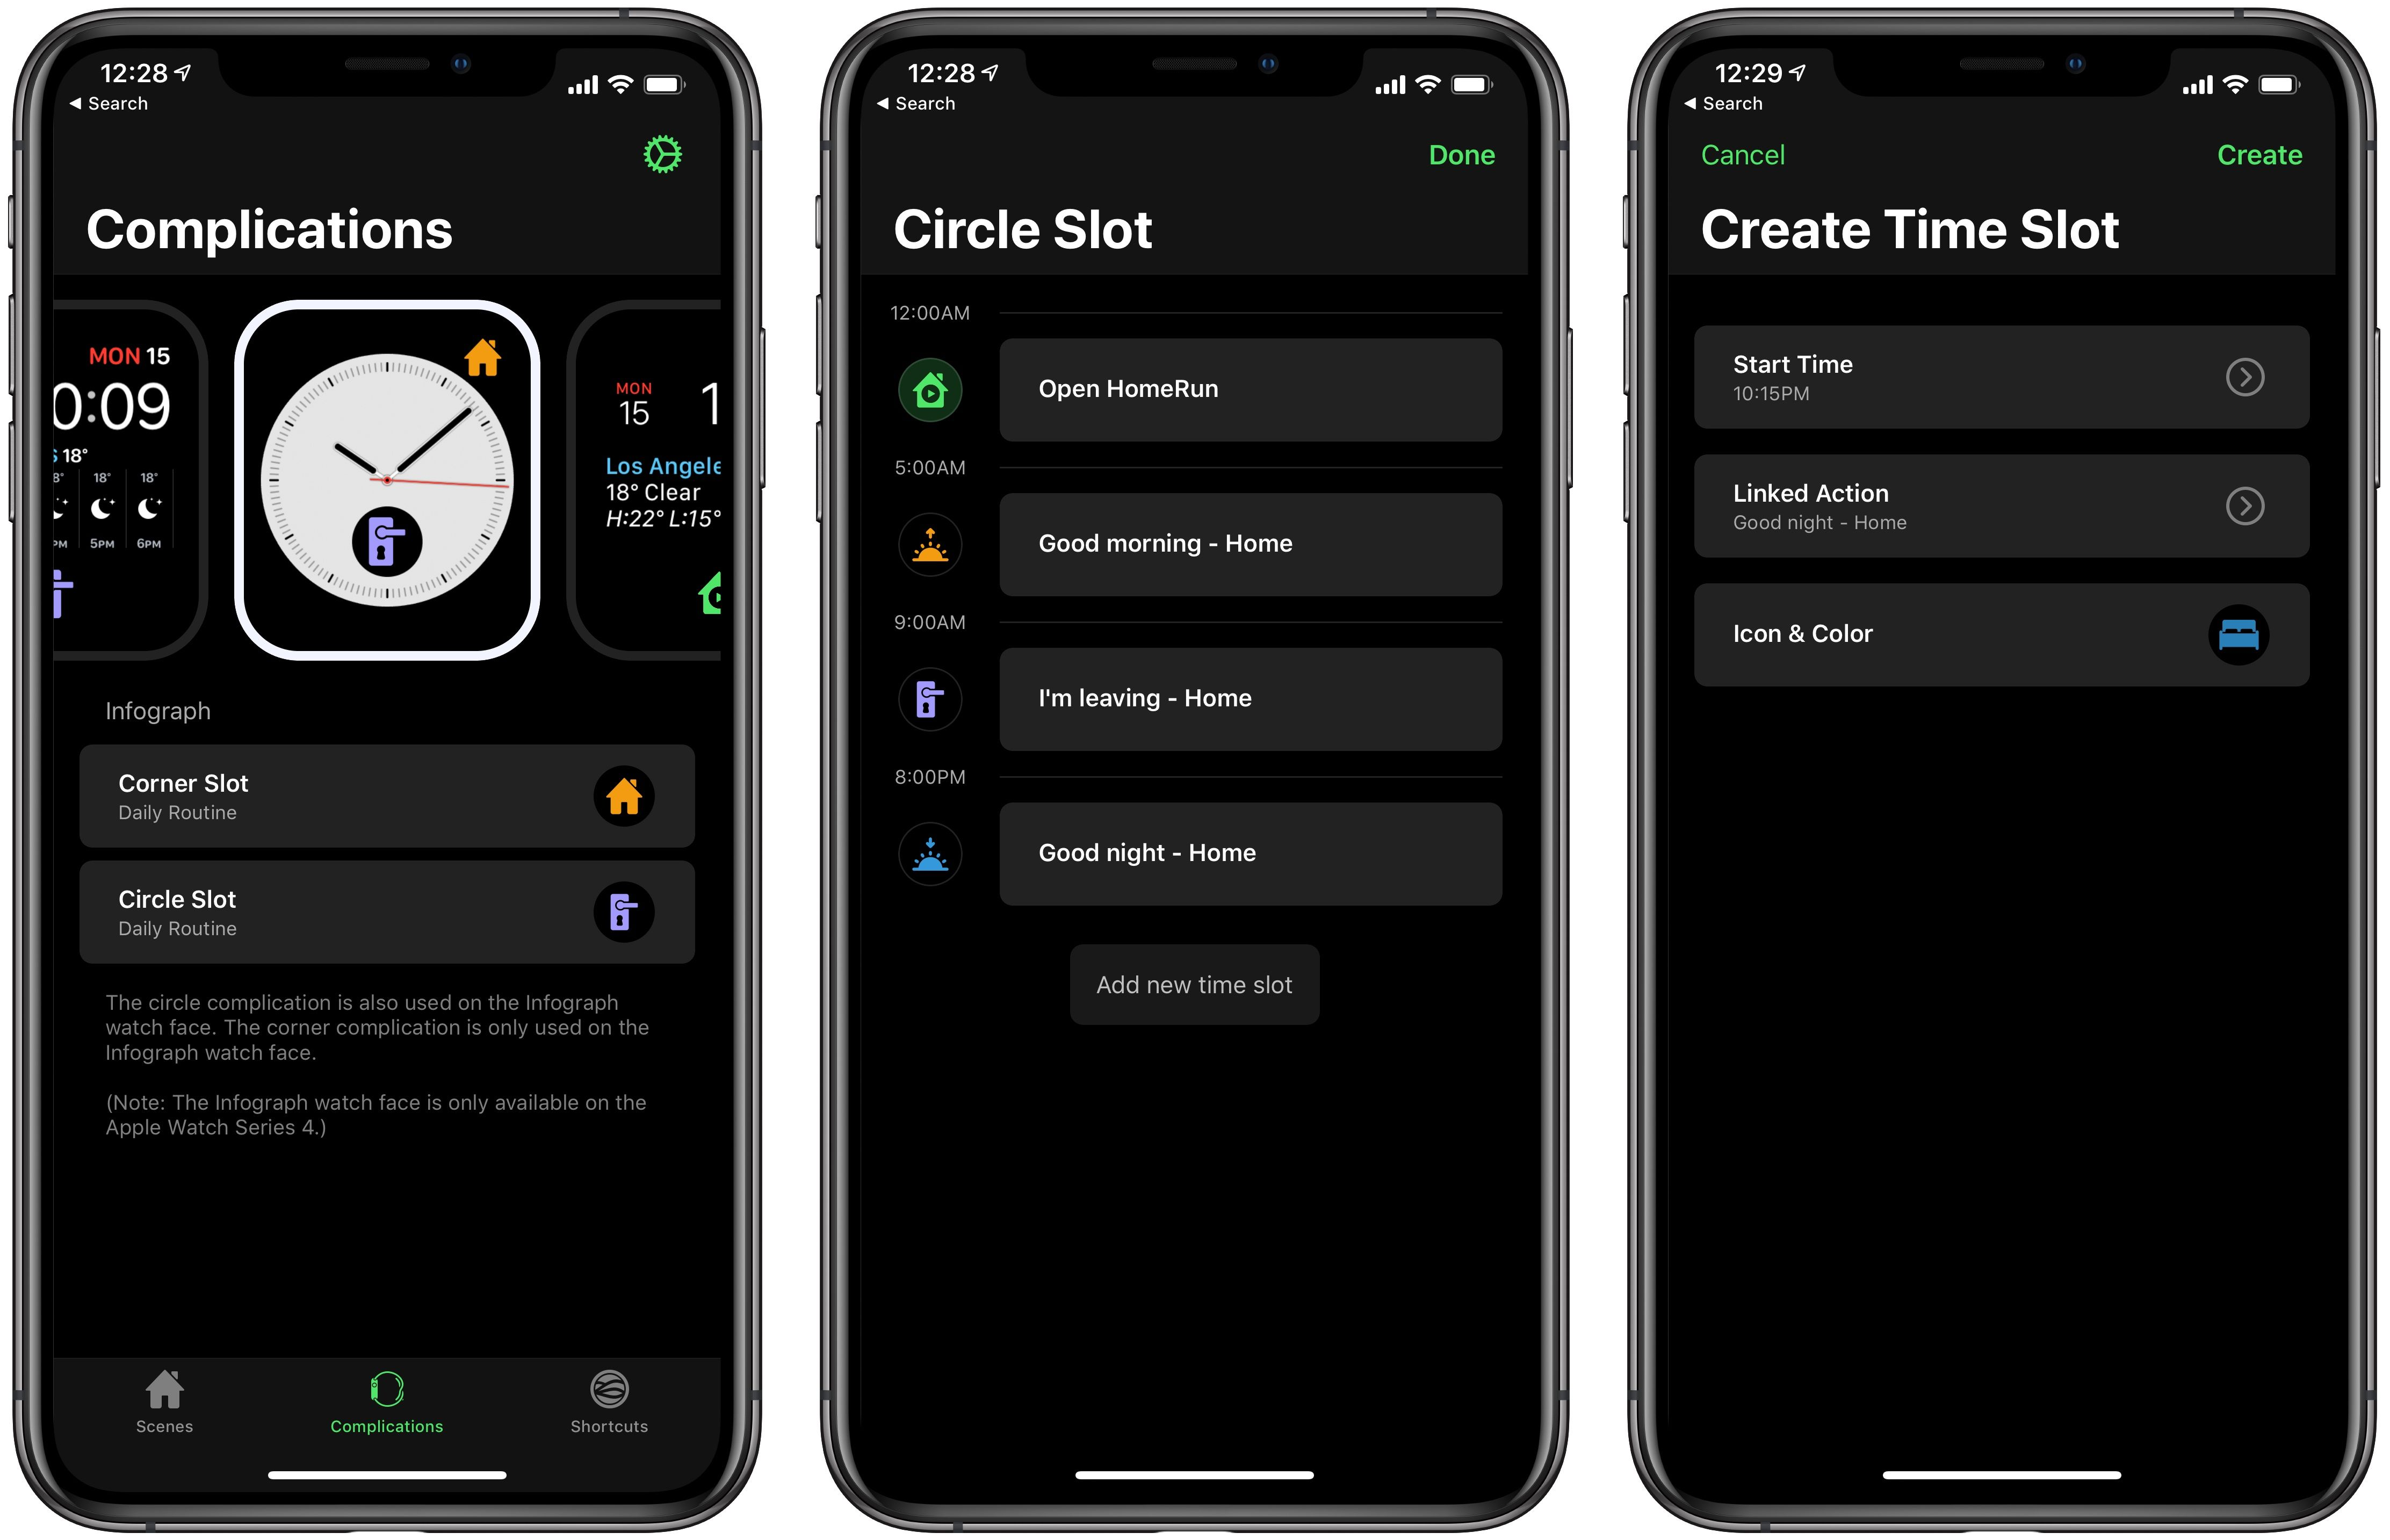 HomeRun Launches Advanced Daily Routine Feature for